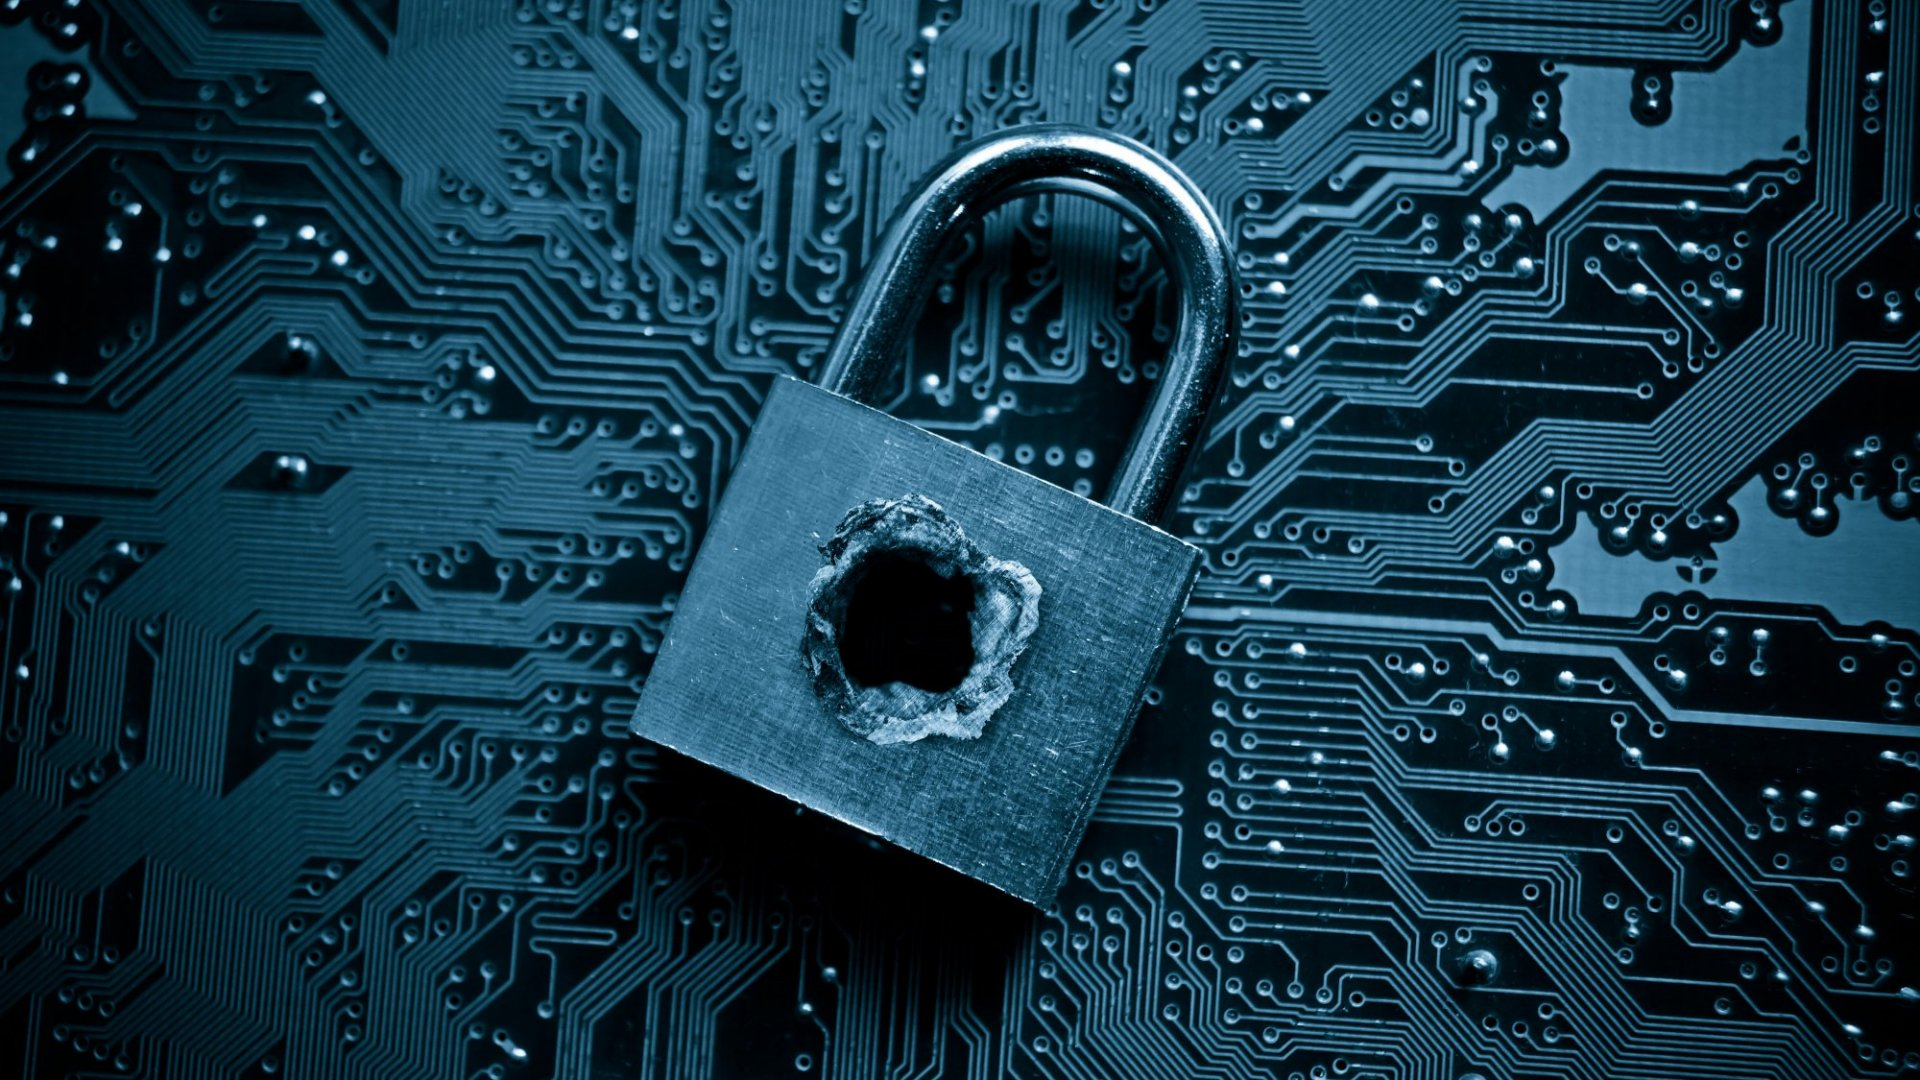 Why Cybersecurity Researchers Are Suddenly Discovering the Same Vulnerabilities After So Many Years